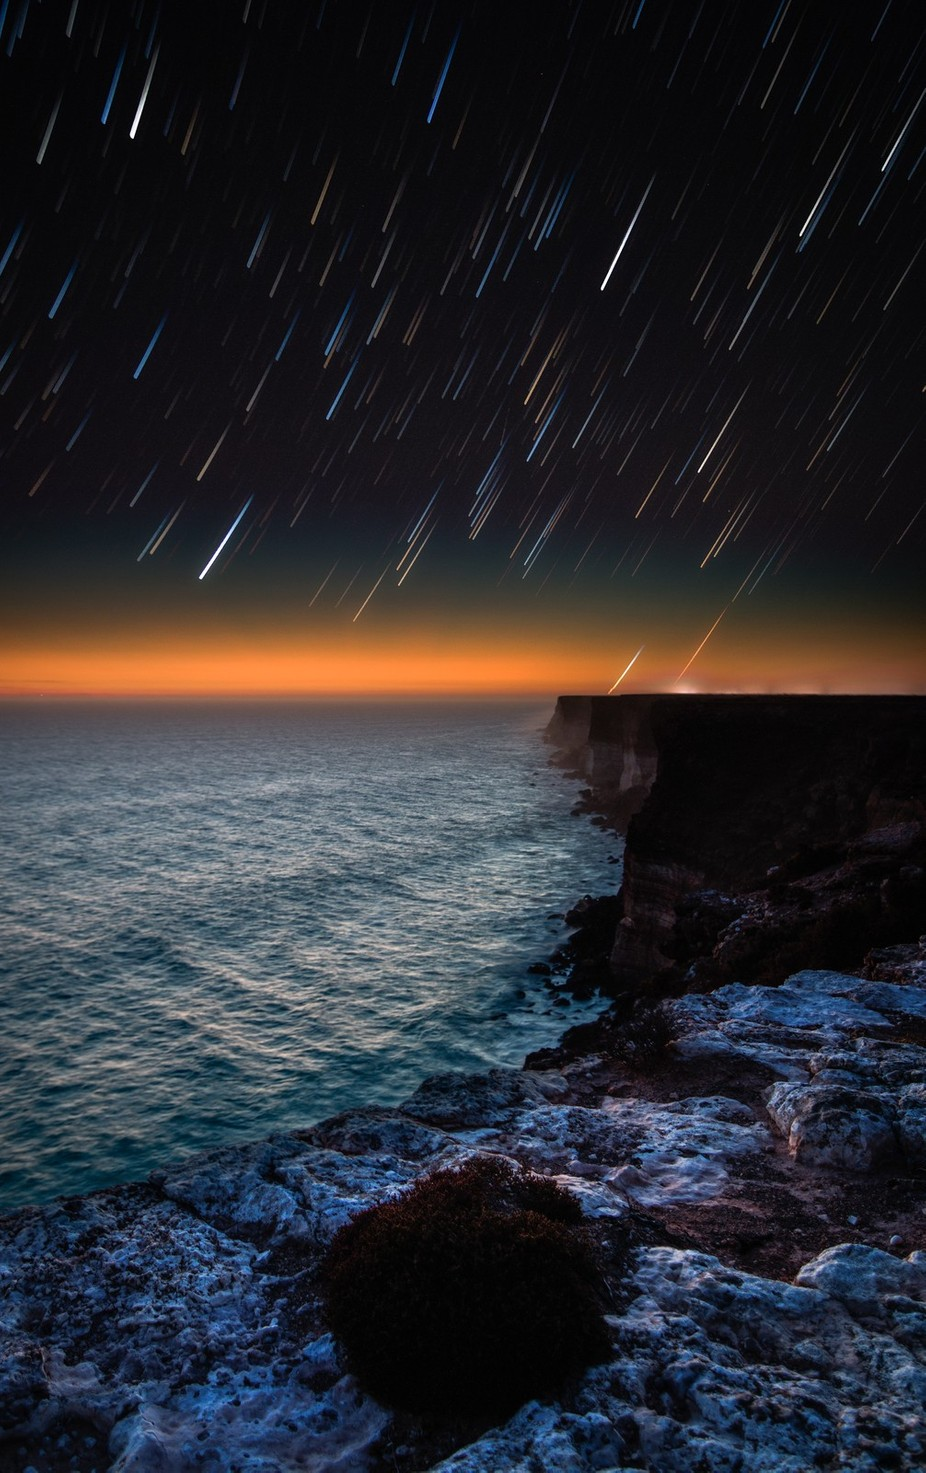 star cliff by hasmonaut